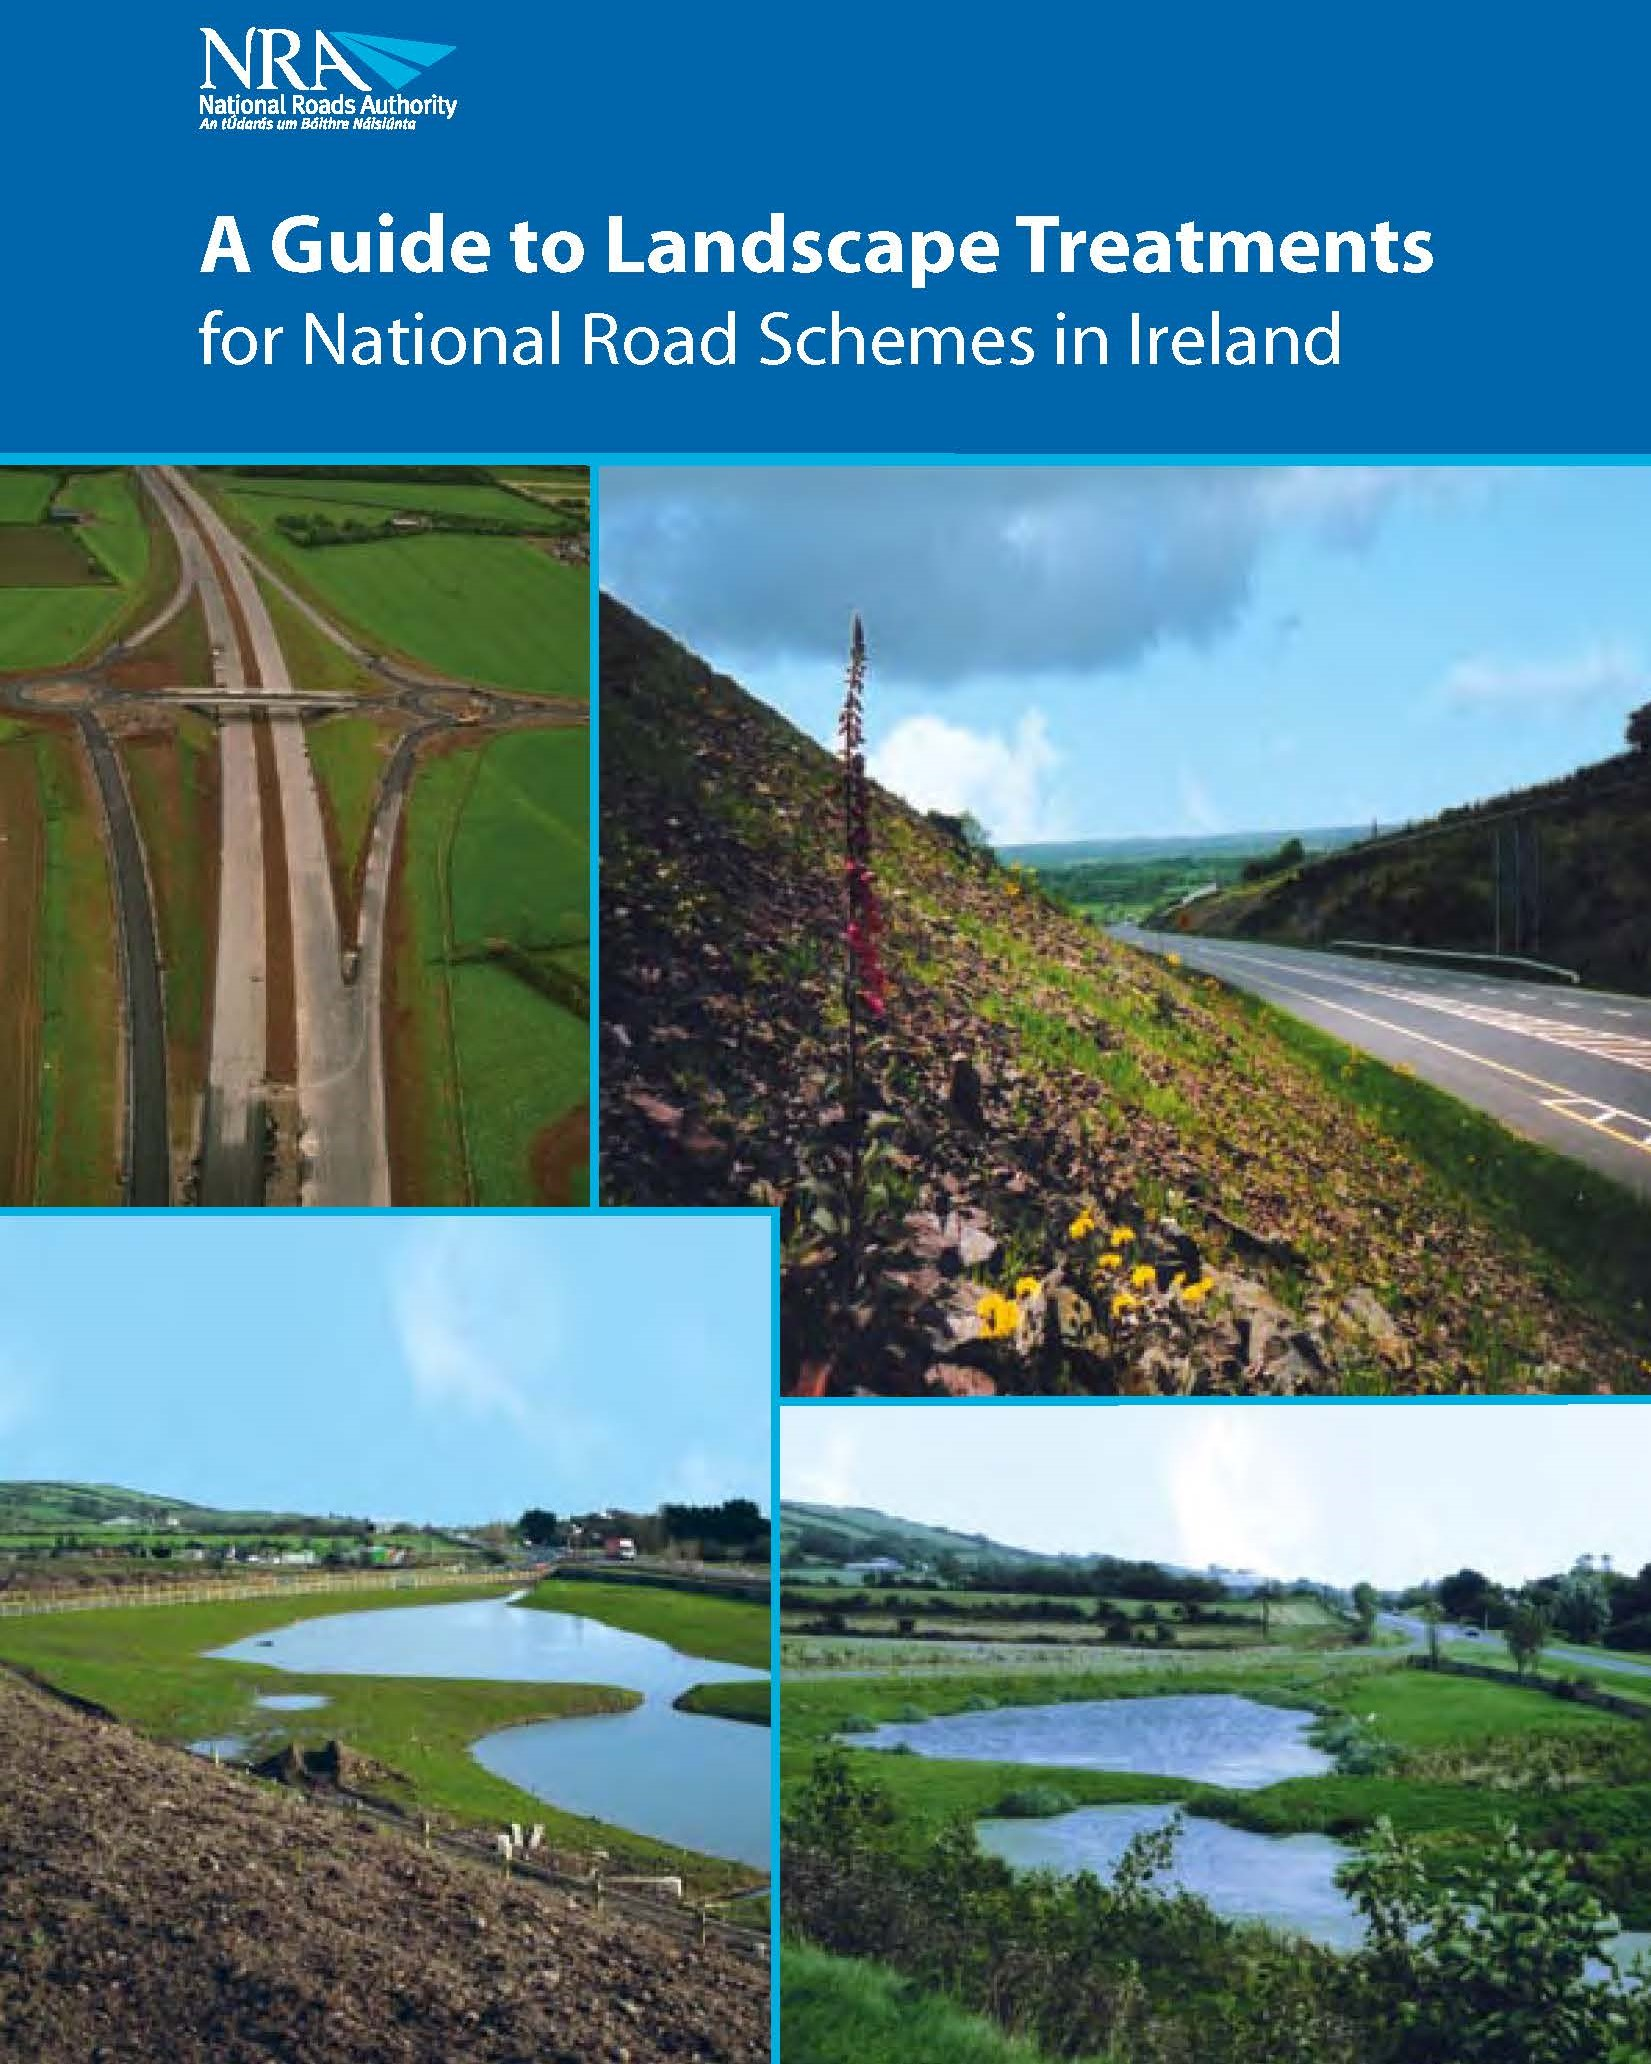 A Guide to Landscape Treatments for National Road Schemes in Ireland. National Roads Authority (NRA)